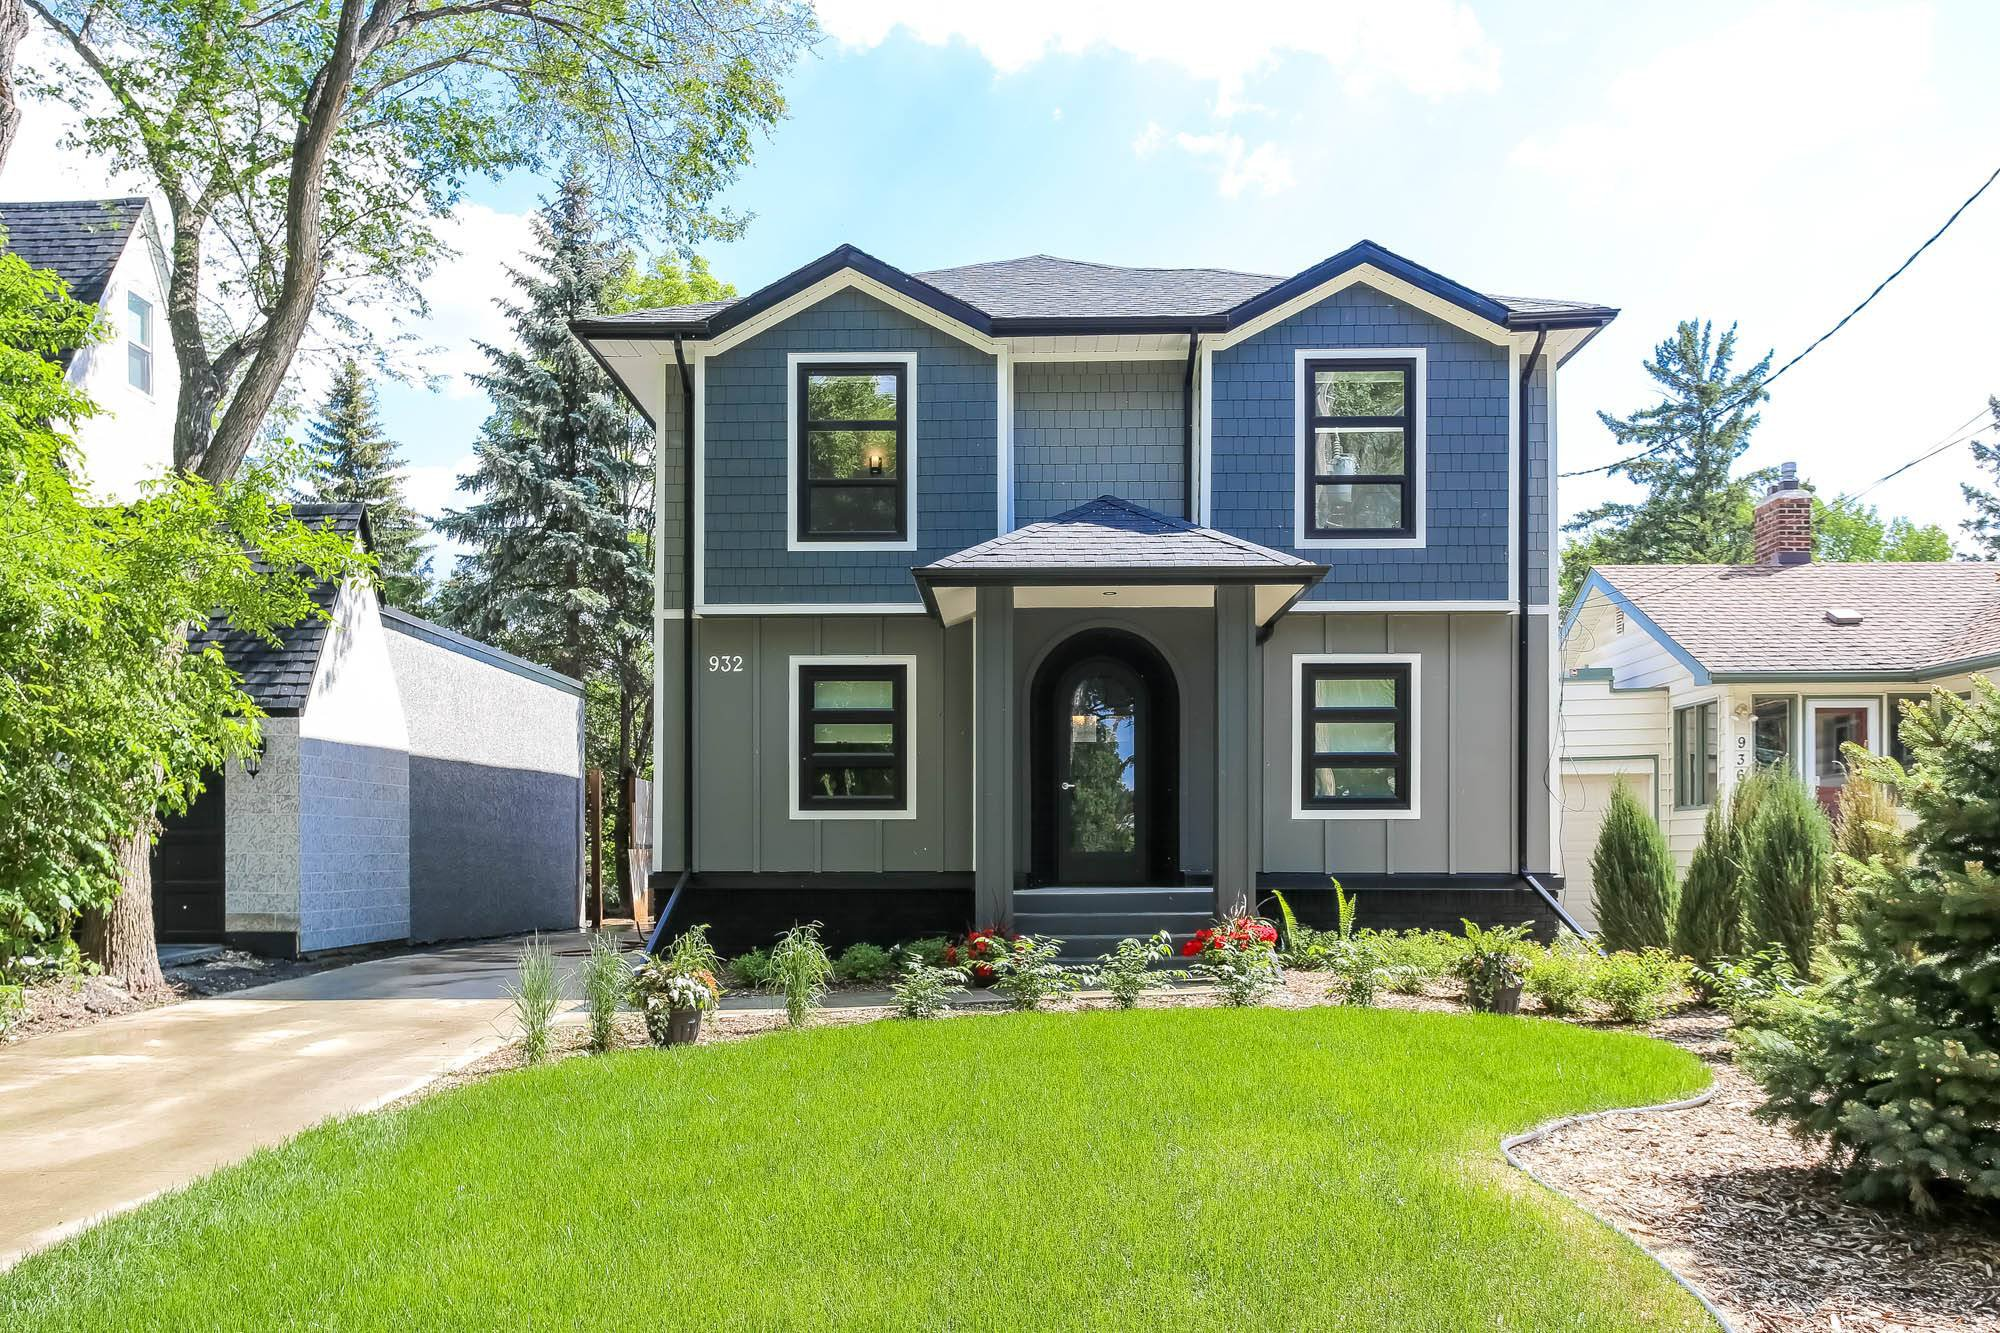 Welcome to 932 Palmerston Ave. on the Assiniboine River in Wolseley!